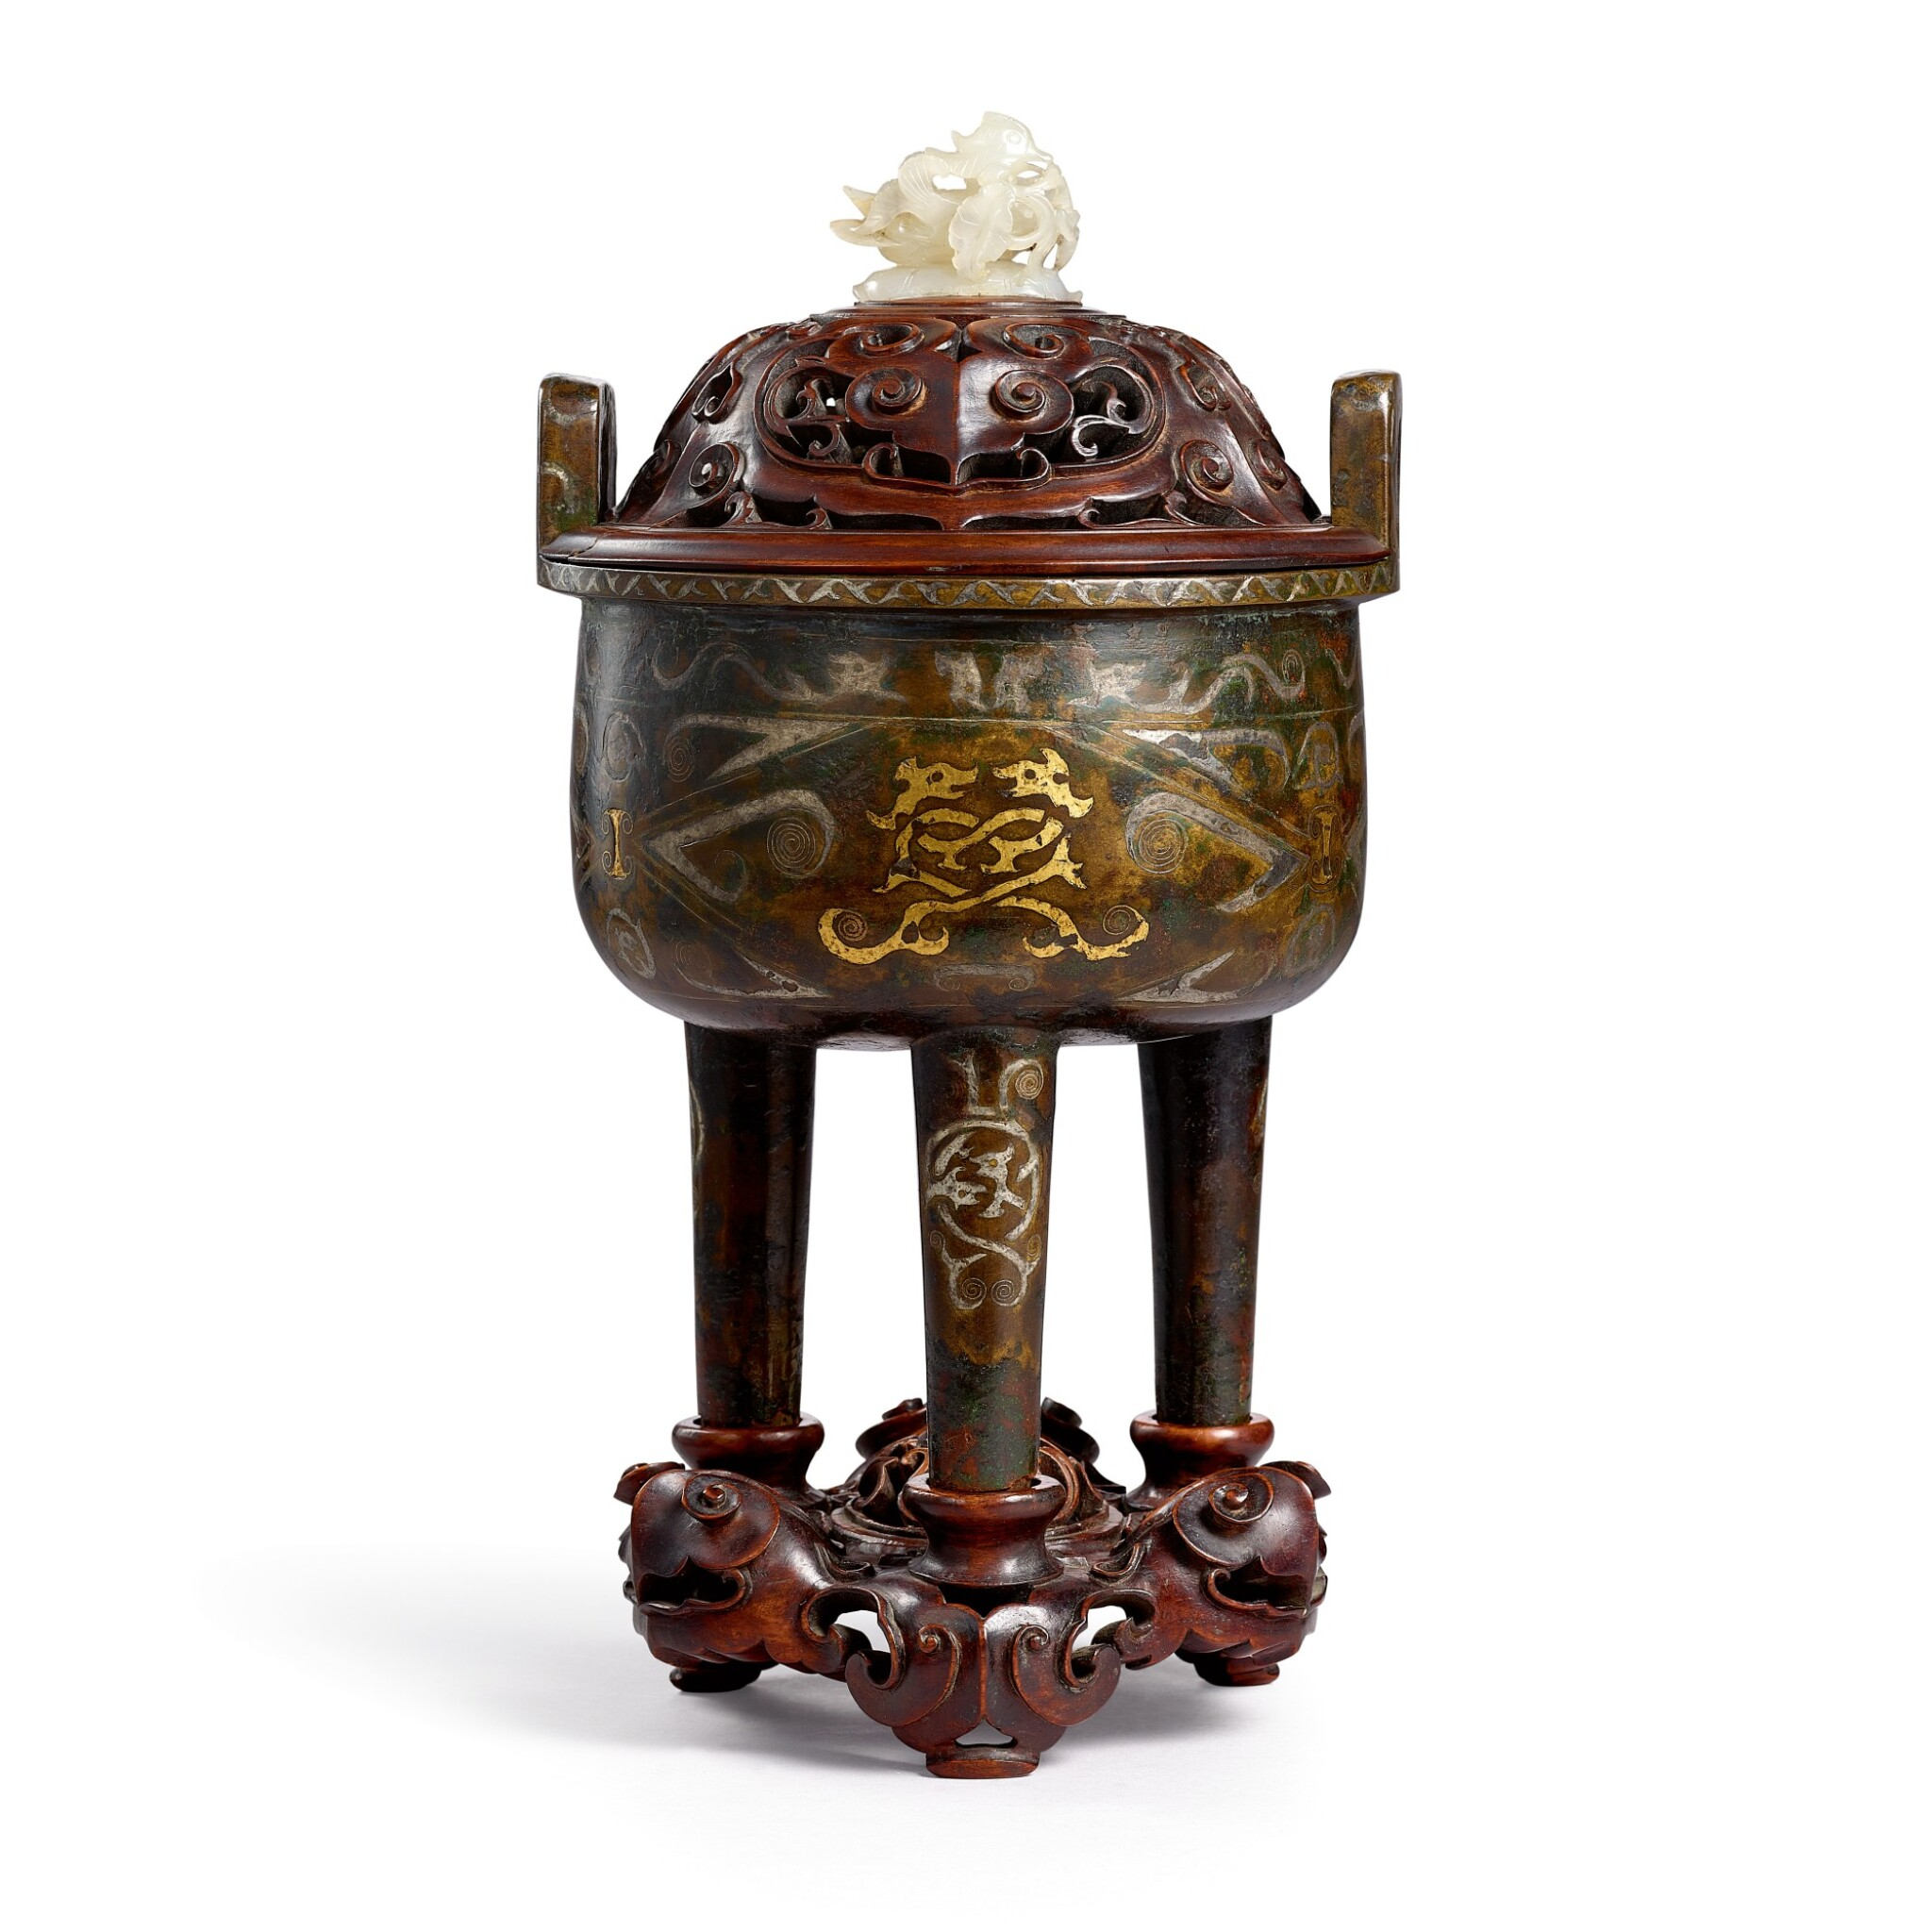 View full screen - View 1 of Lot 3684. A gold and silver-inlaid bronze incense burner, ding Late Ming – early Qing dynasty | 明末至清初 銅錯金銀鏨雲龍紋鼎式爐.